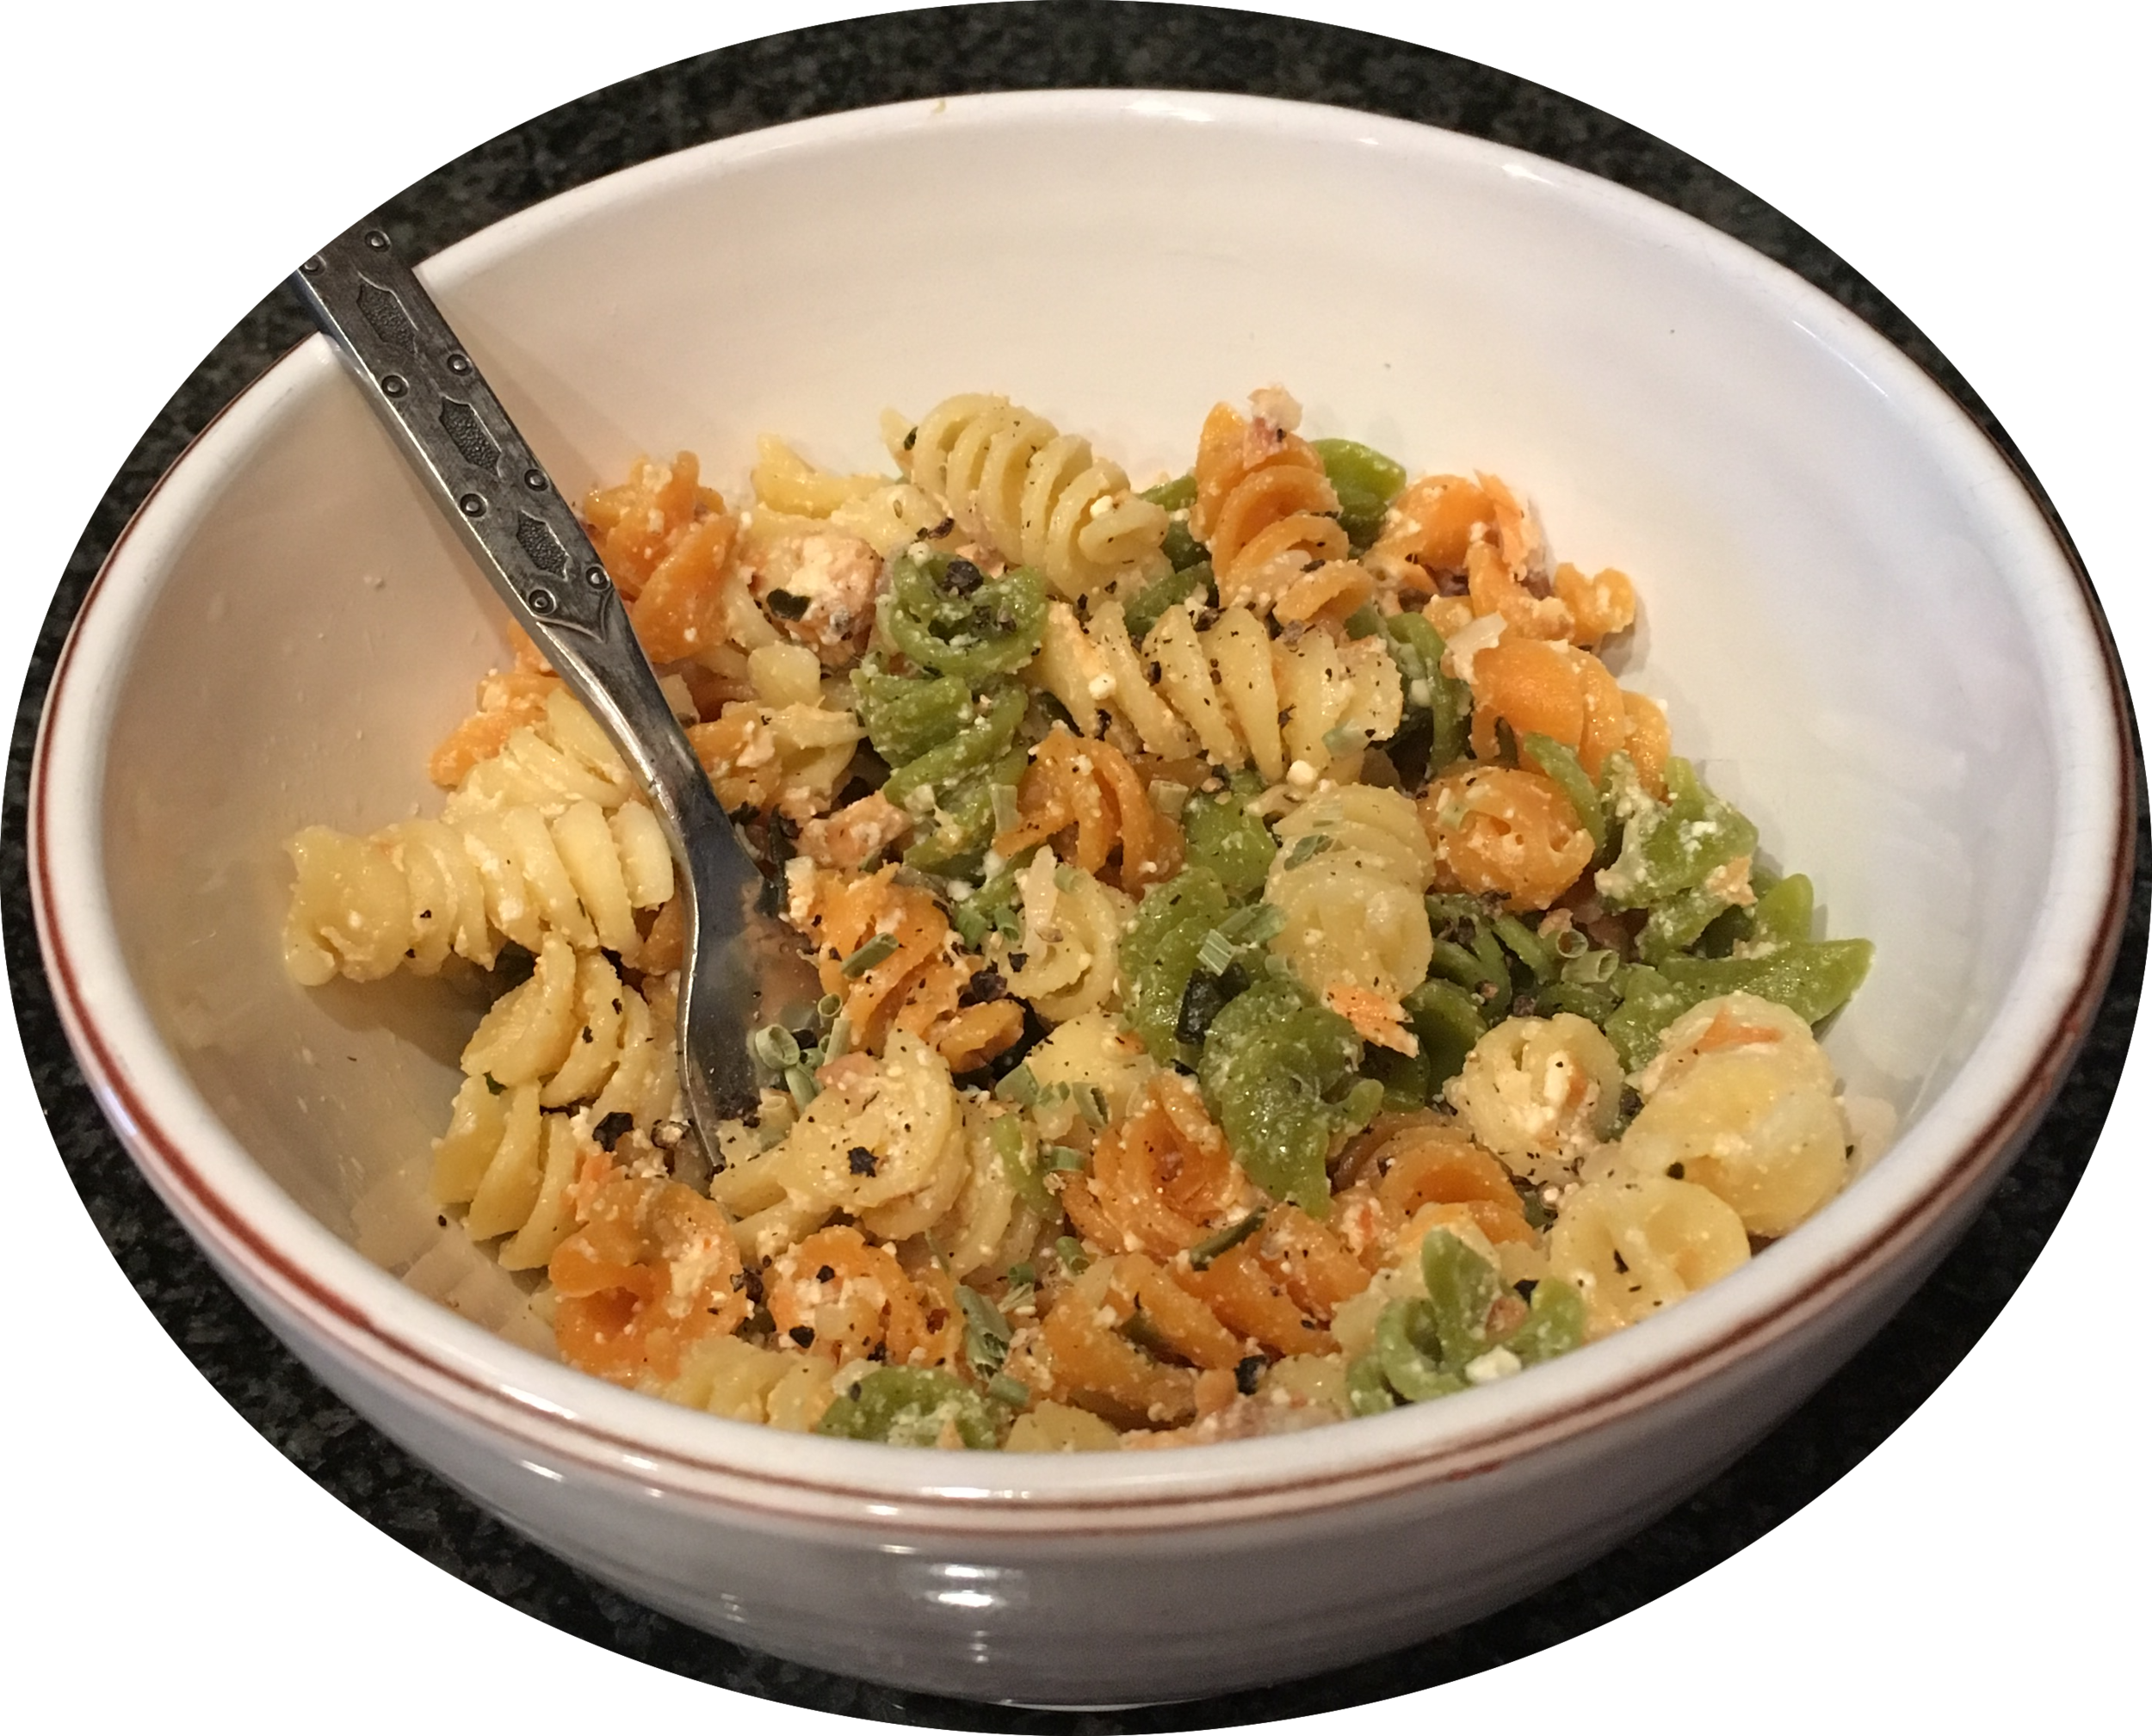 Medicated Creamy Smoked Salmon Pasta - Medicated with CBDusing Big Horn Oil Company's olive oil infused by Cannabella Kitchen with CBD isolate -avoid the THC!